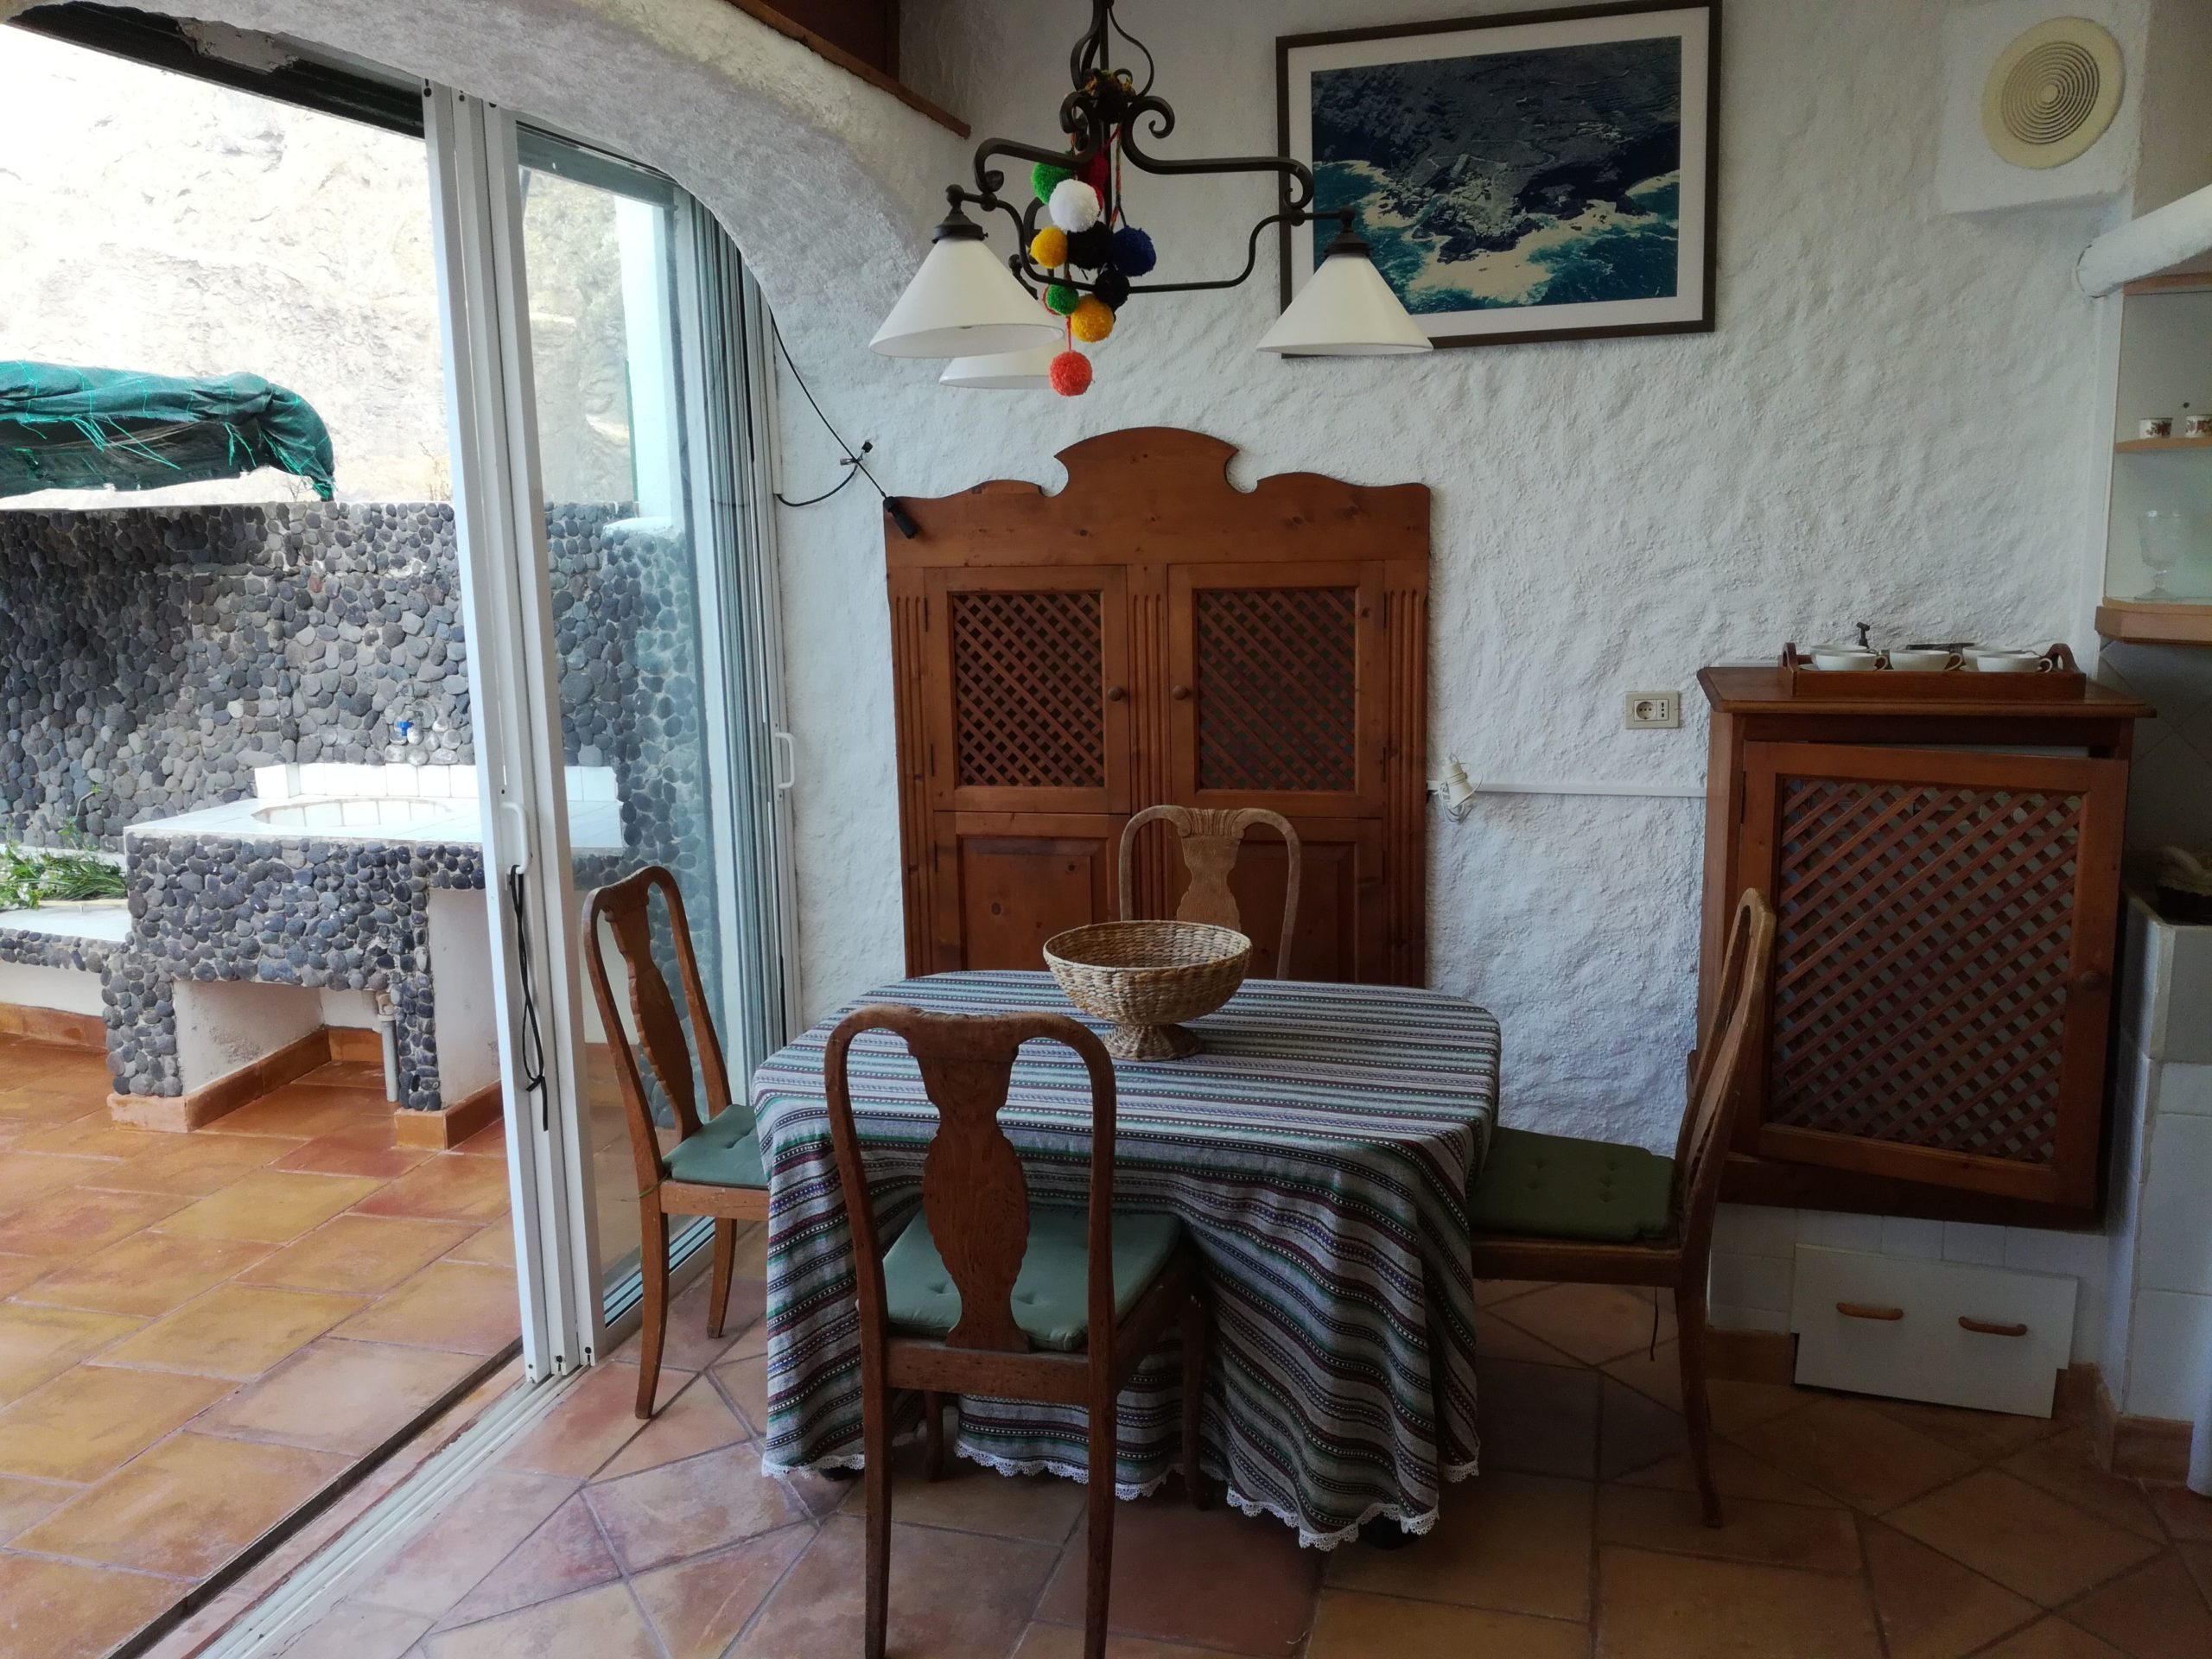 Holiday-Home-Directly-on-the-Sea-Tenerife-11